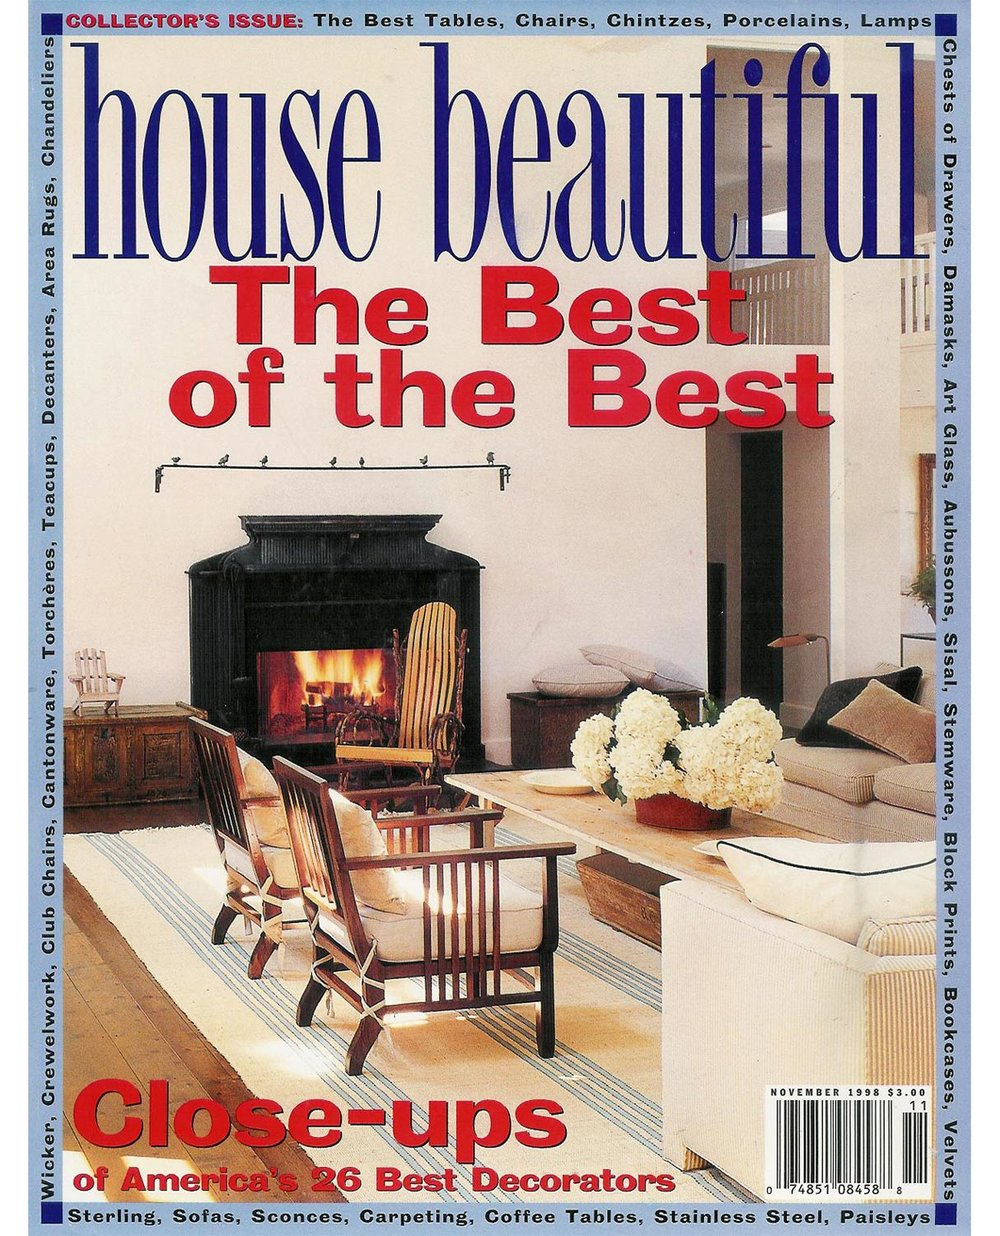 housebeautiful1998-cover_alemanmoore.jpg